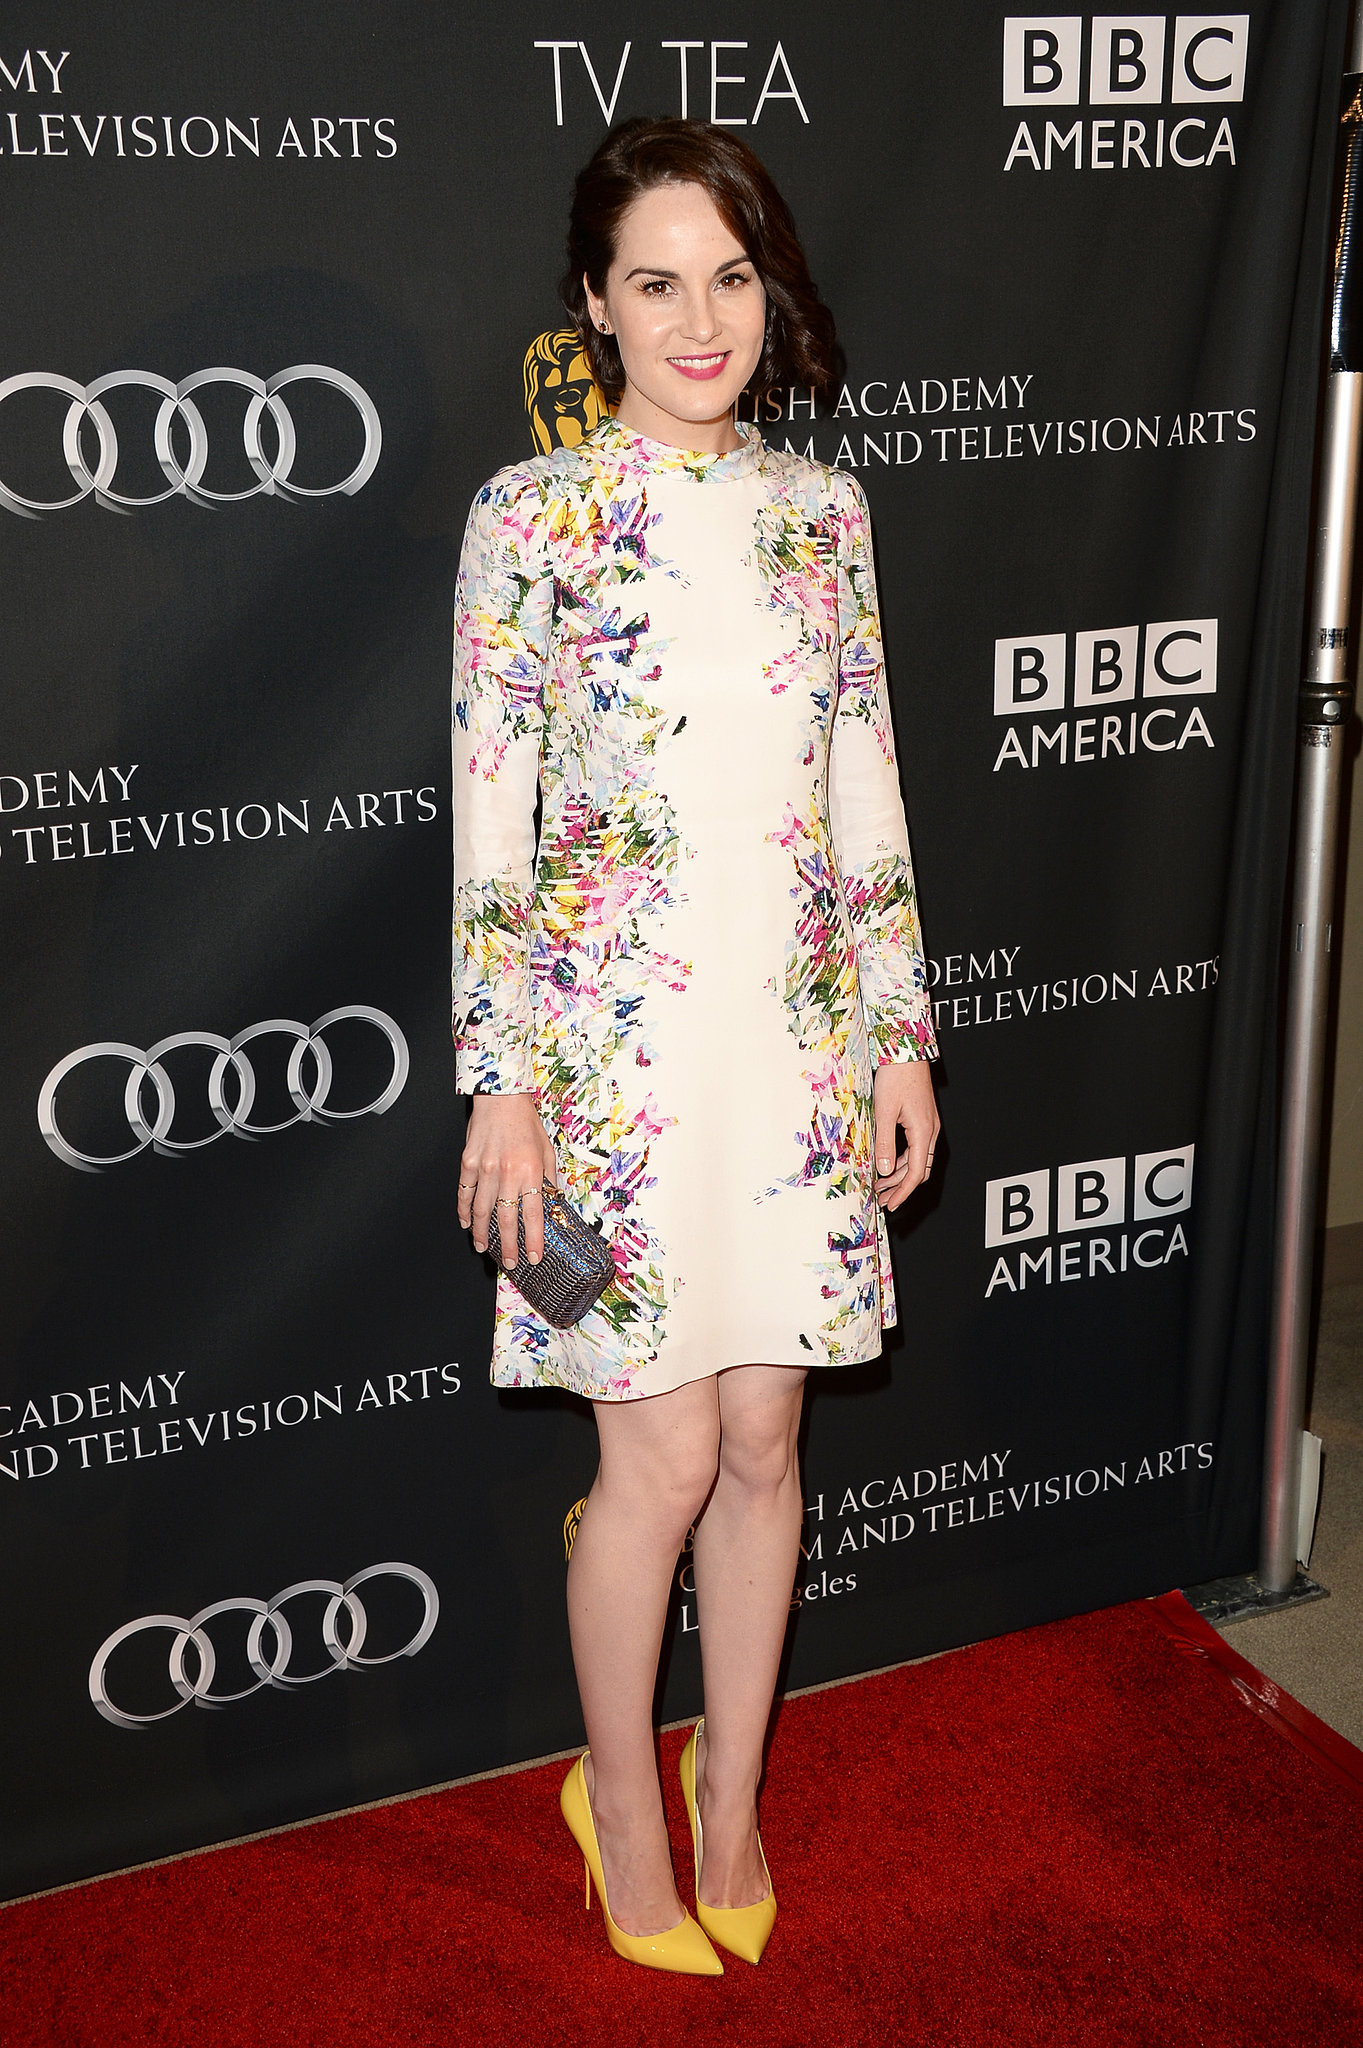 Michelle Dockery also chose a floral Erdem dress for the BAFTA LA TV